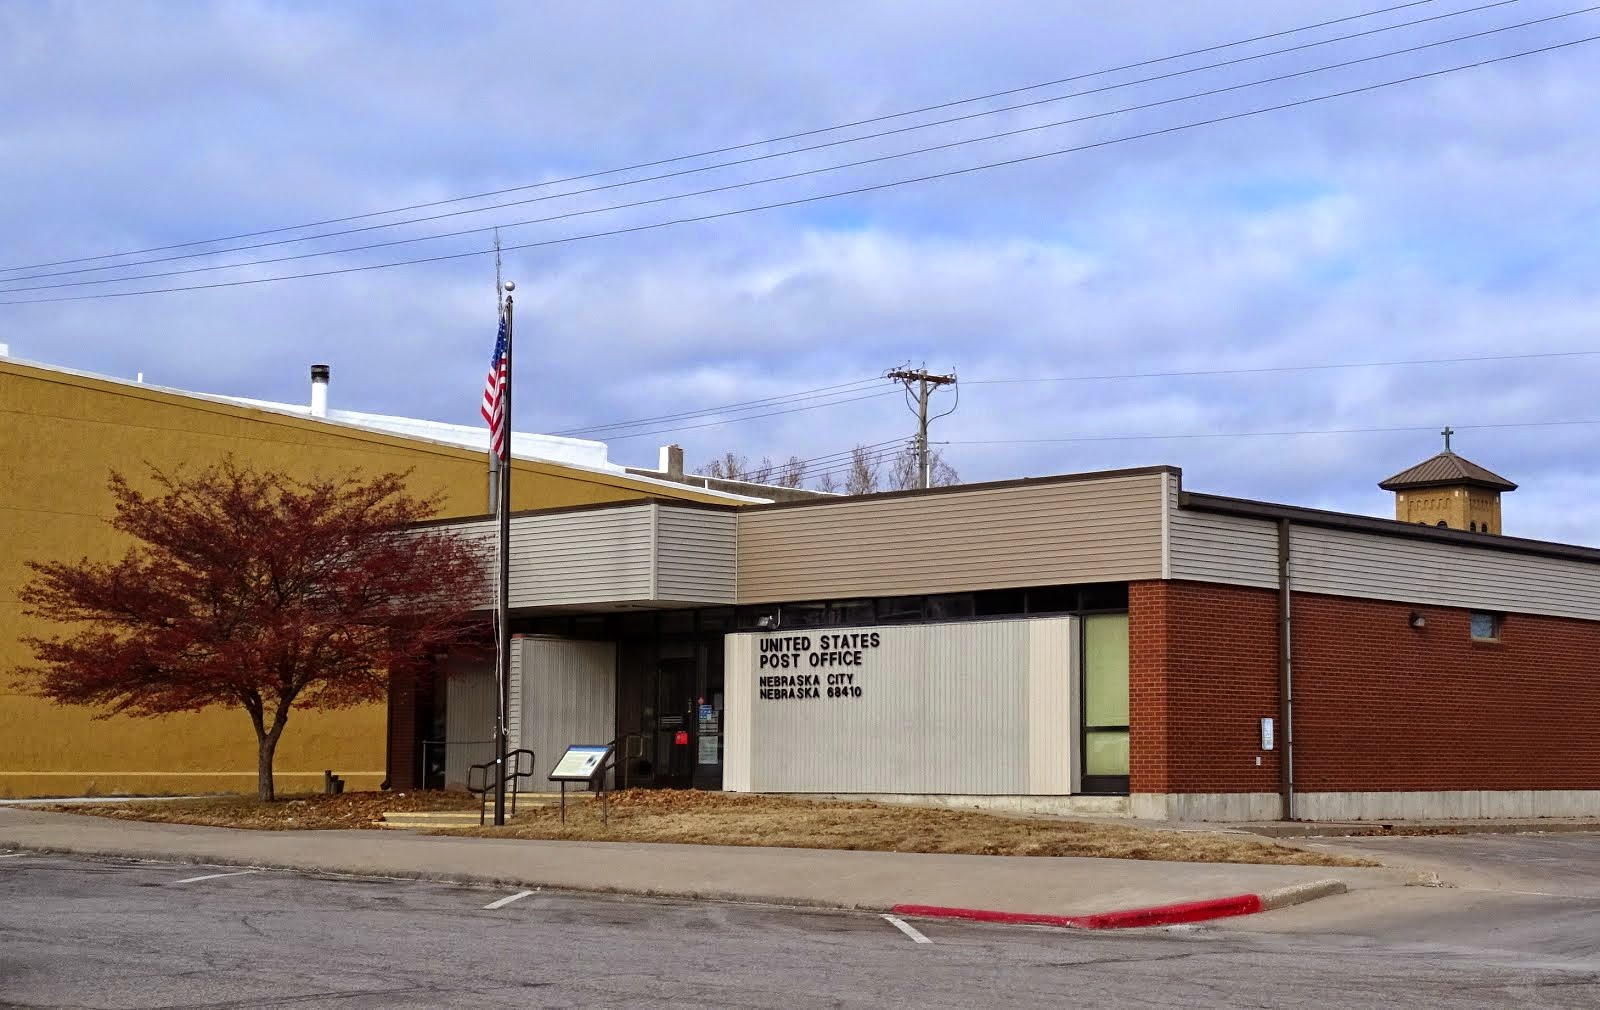 post office Nebraska City